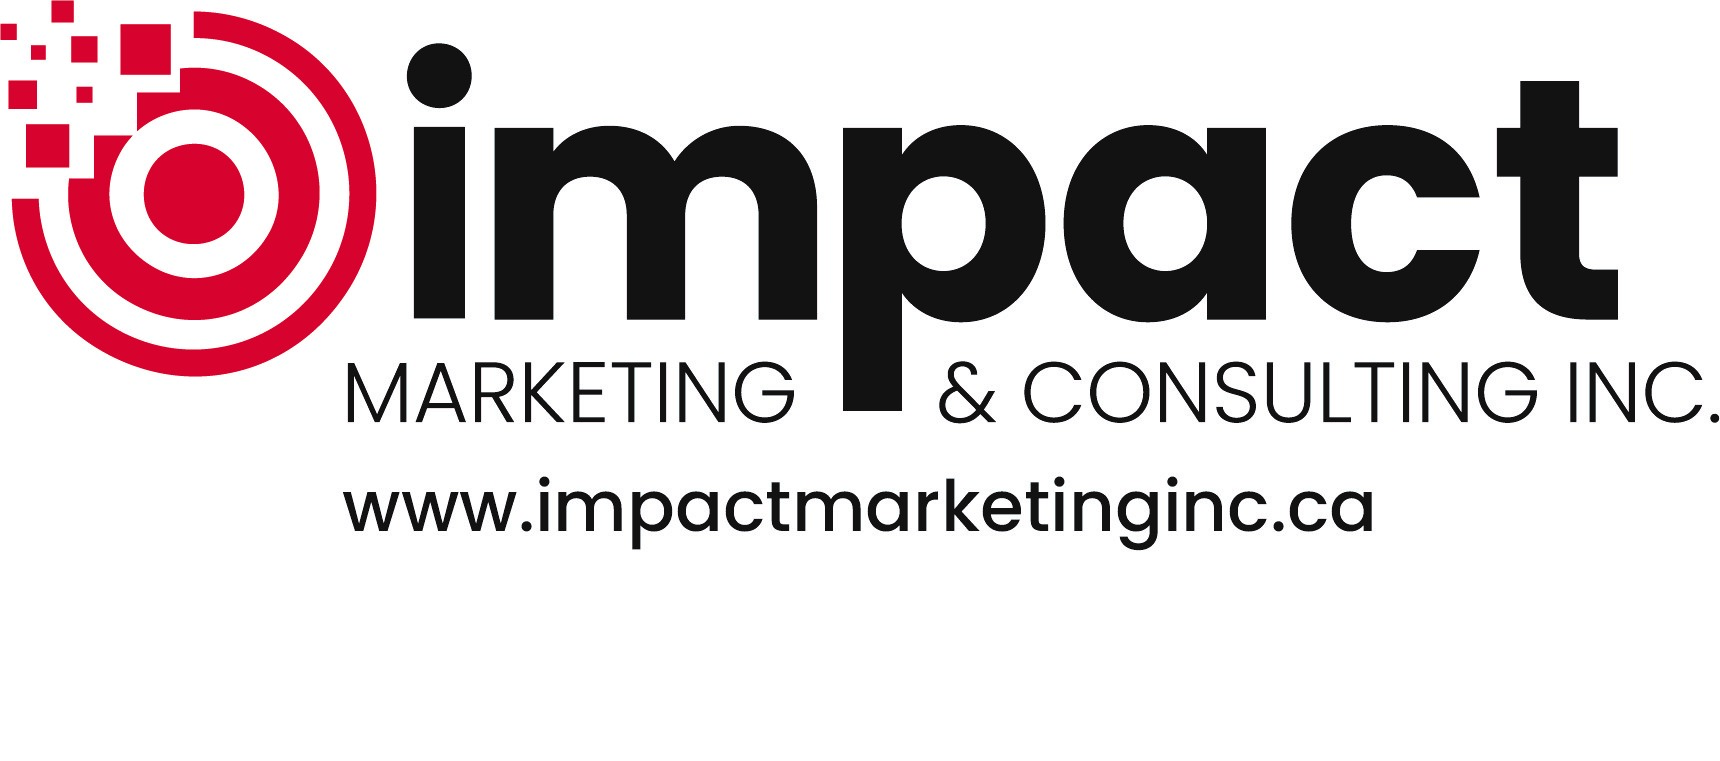 Impact Marketing & Consulting